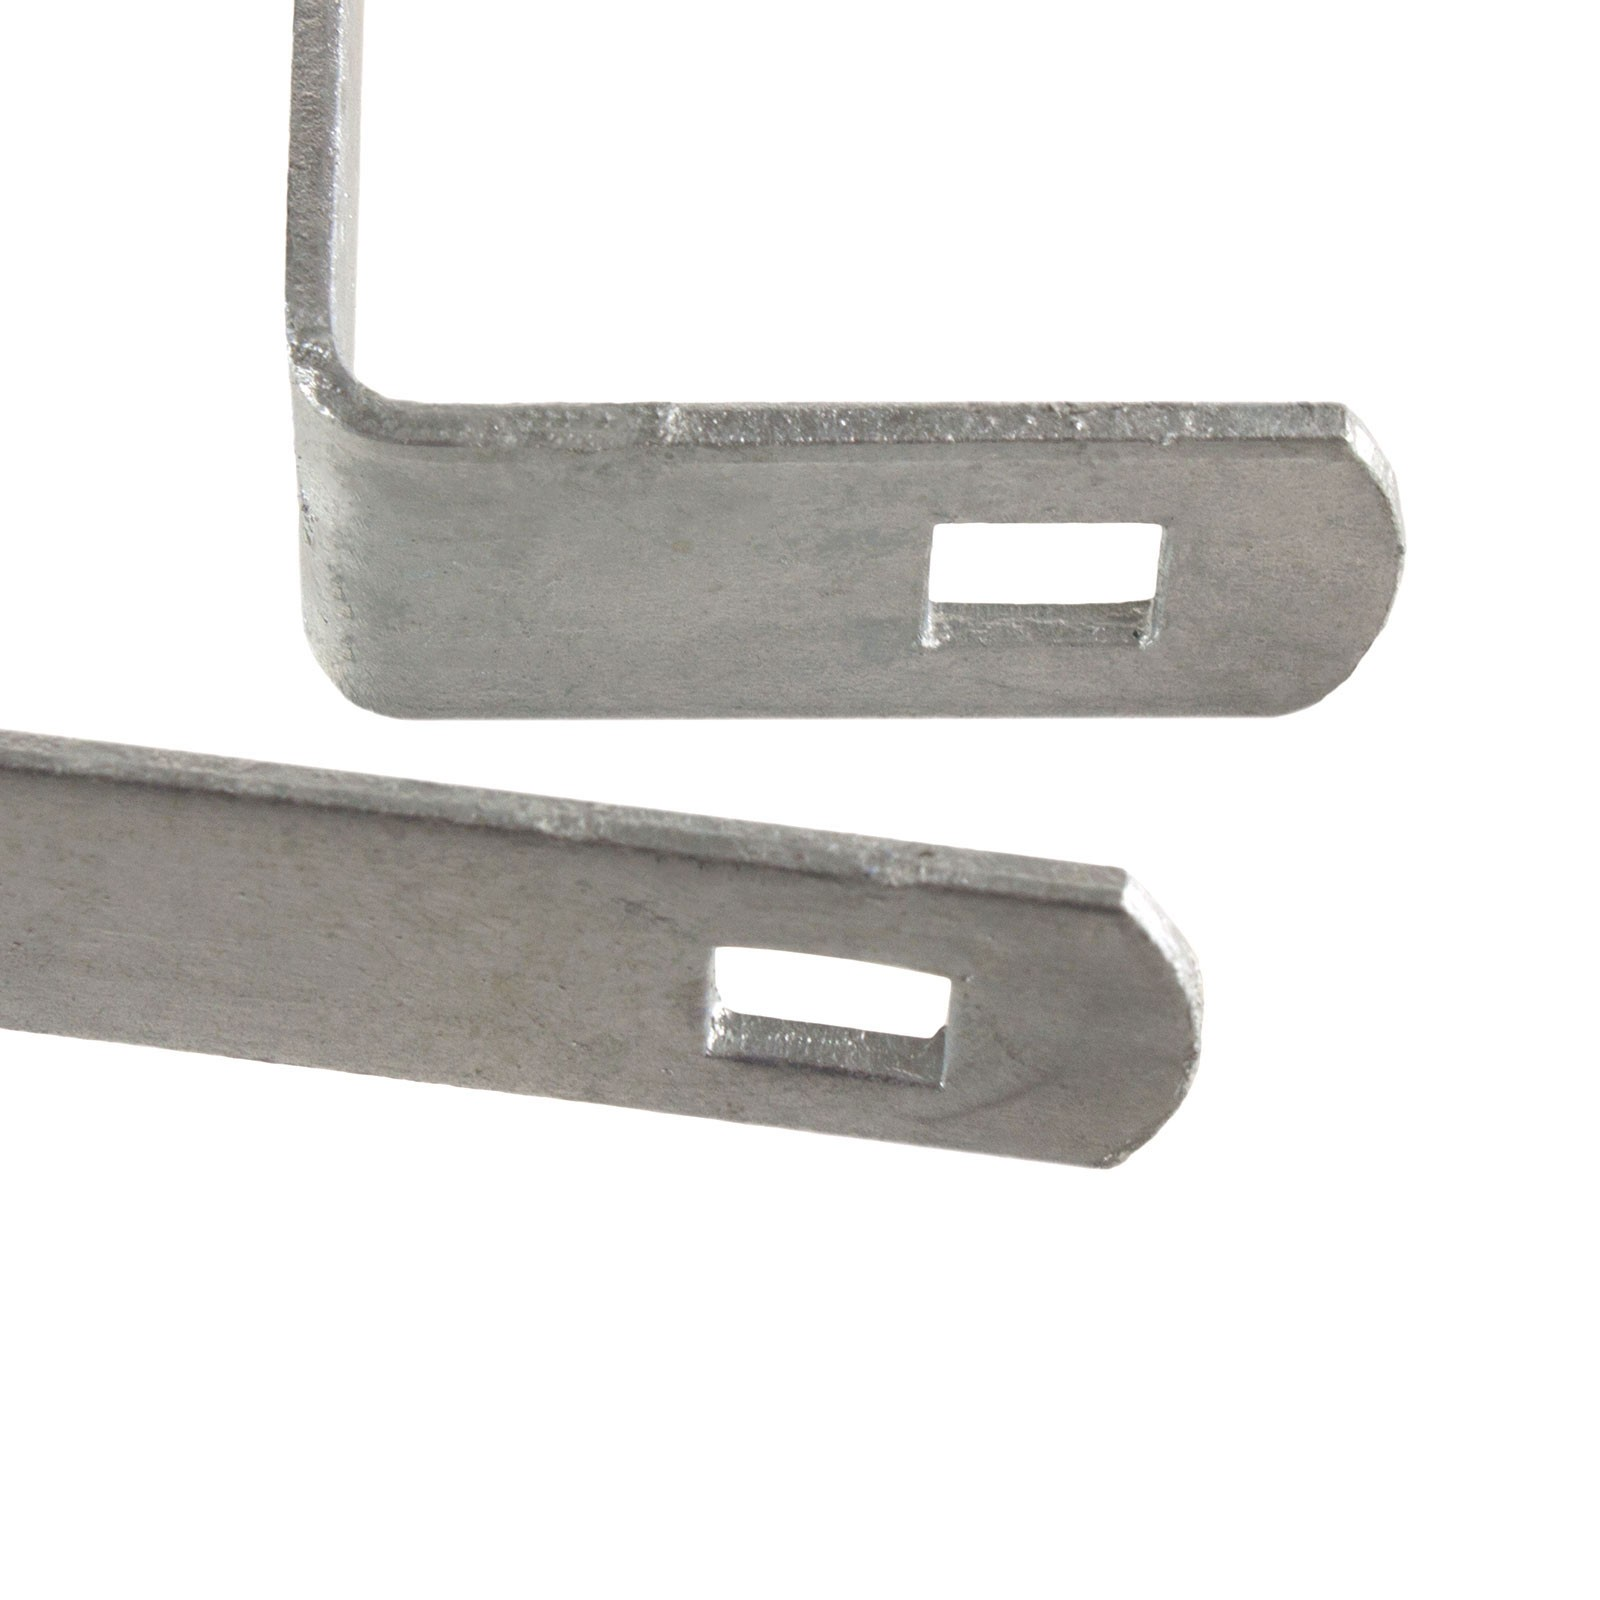 3 Quot Square Tension Band Chain Link 7 8 Quot Galvanized Steel